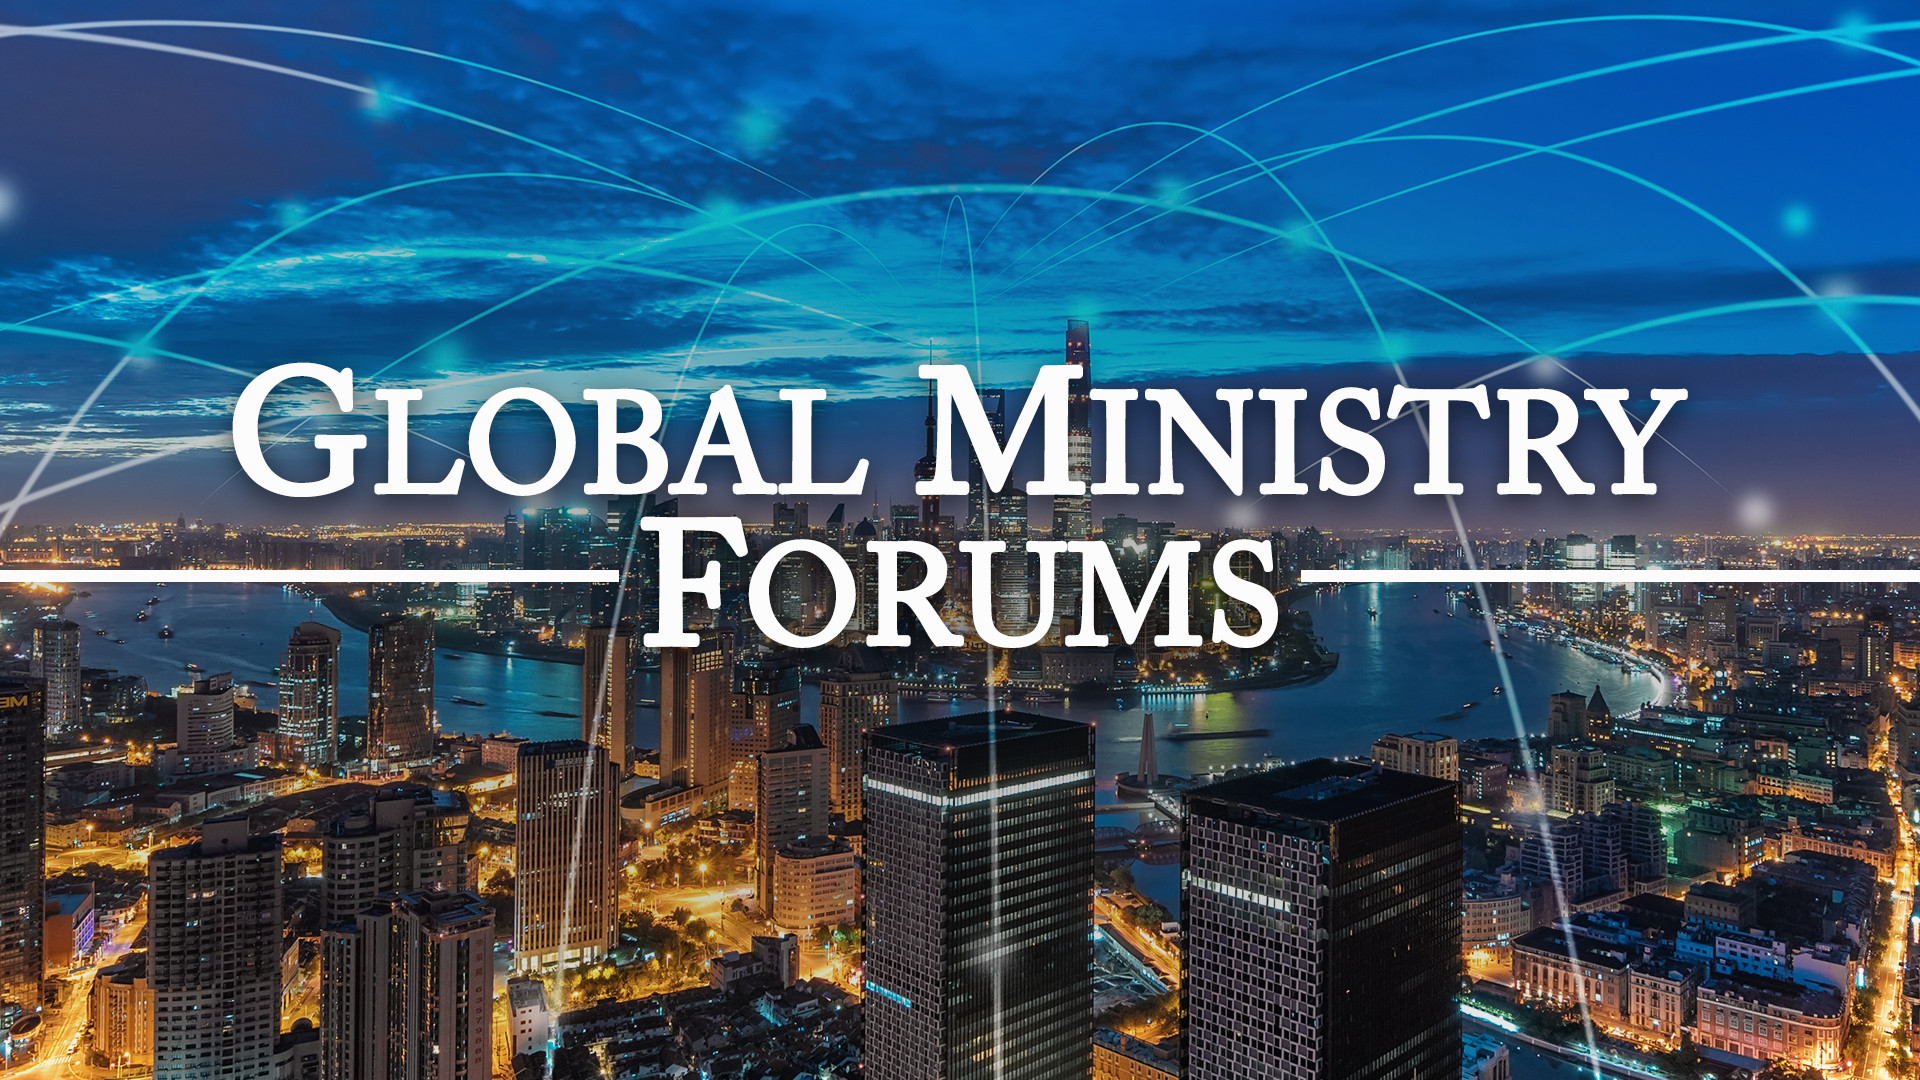 Global Ministry Forums | Church of God